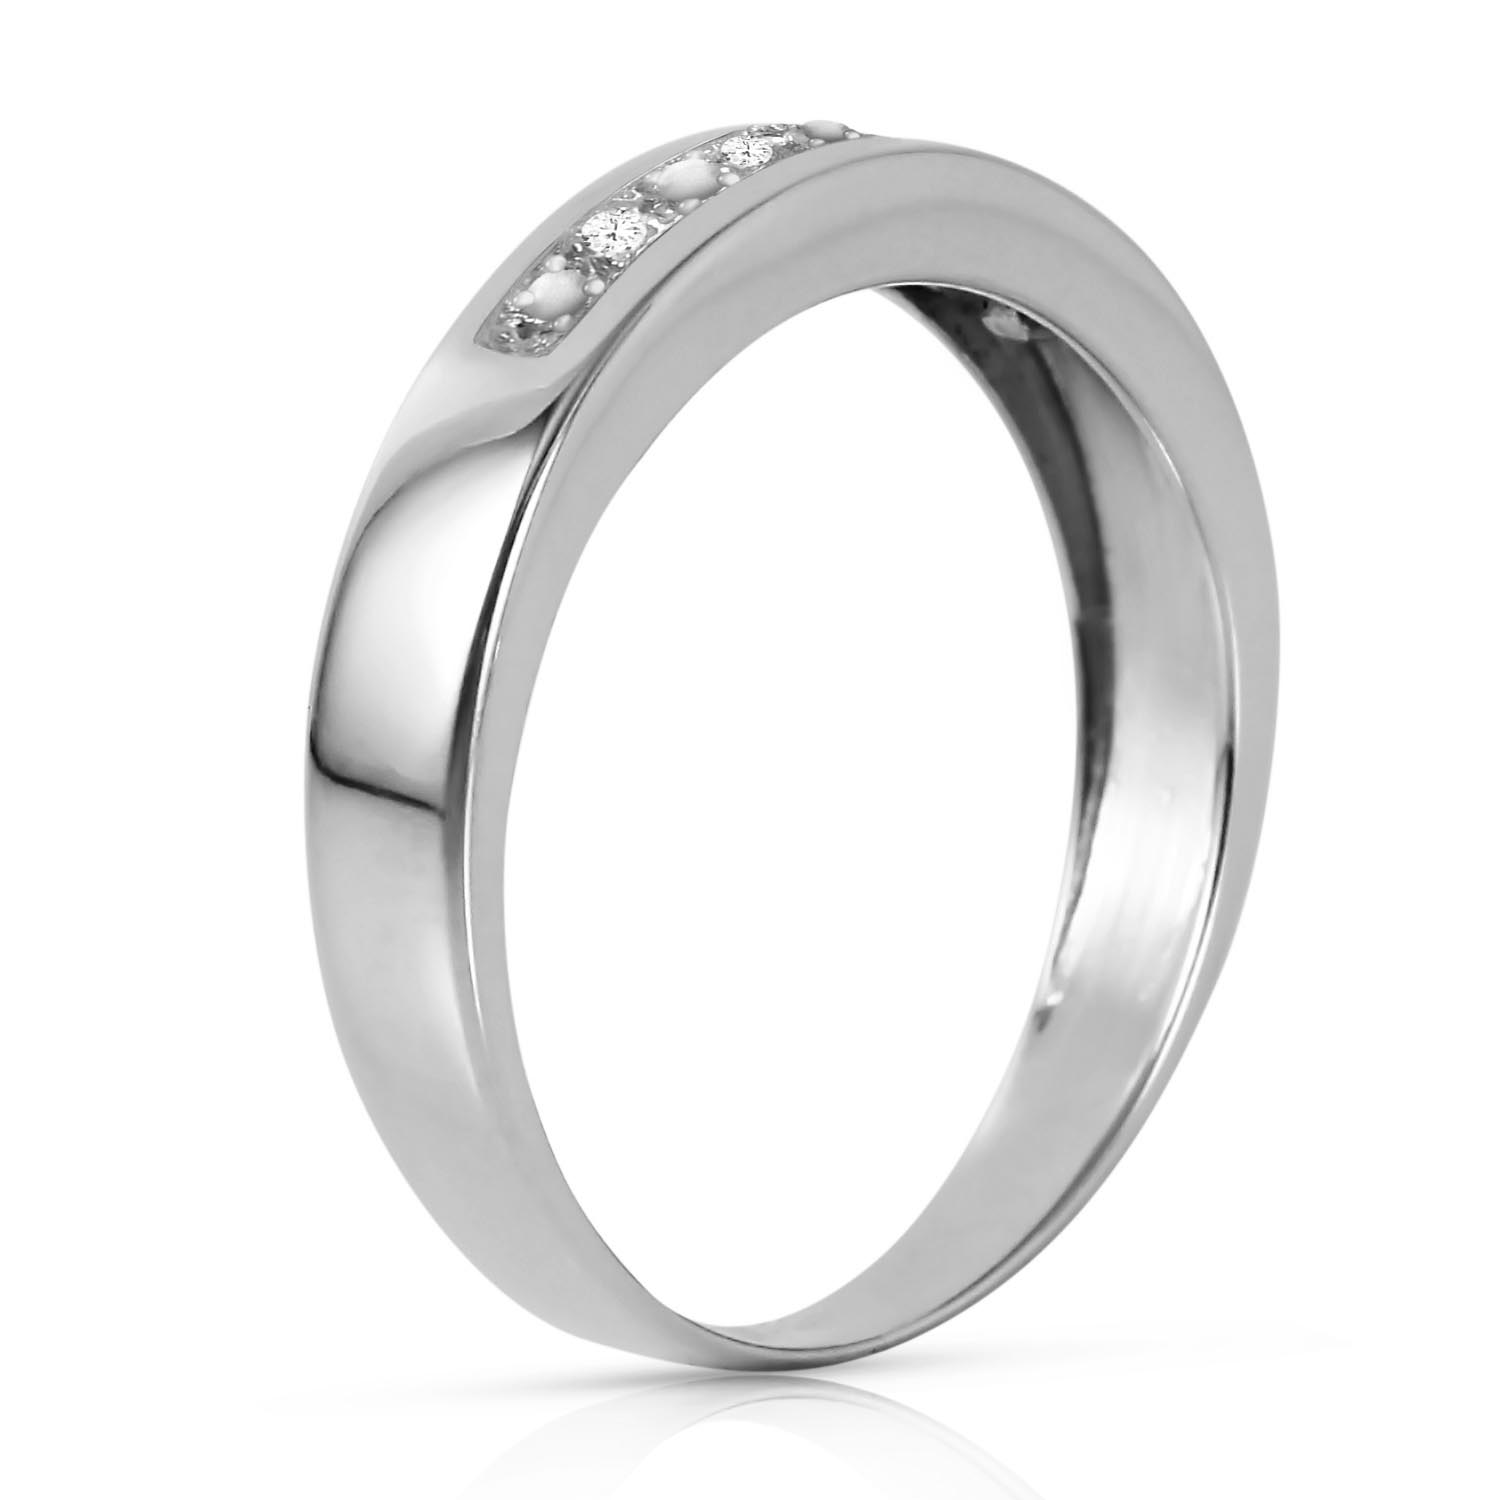 Round Brilliant Cut Diamond Ring in 14K White Gold